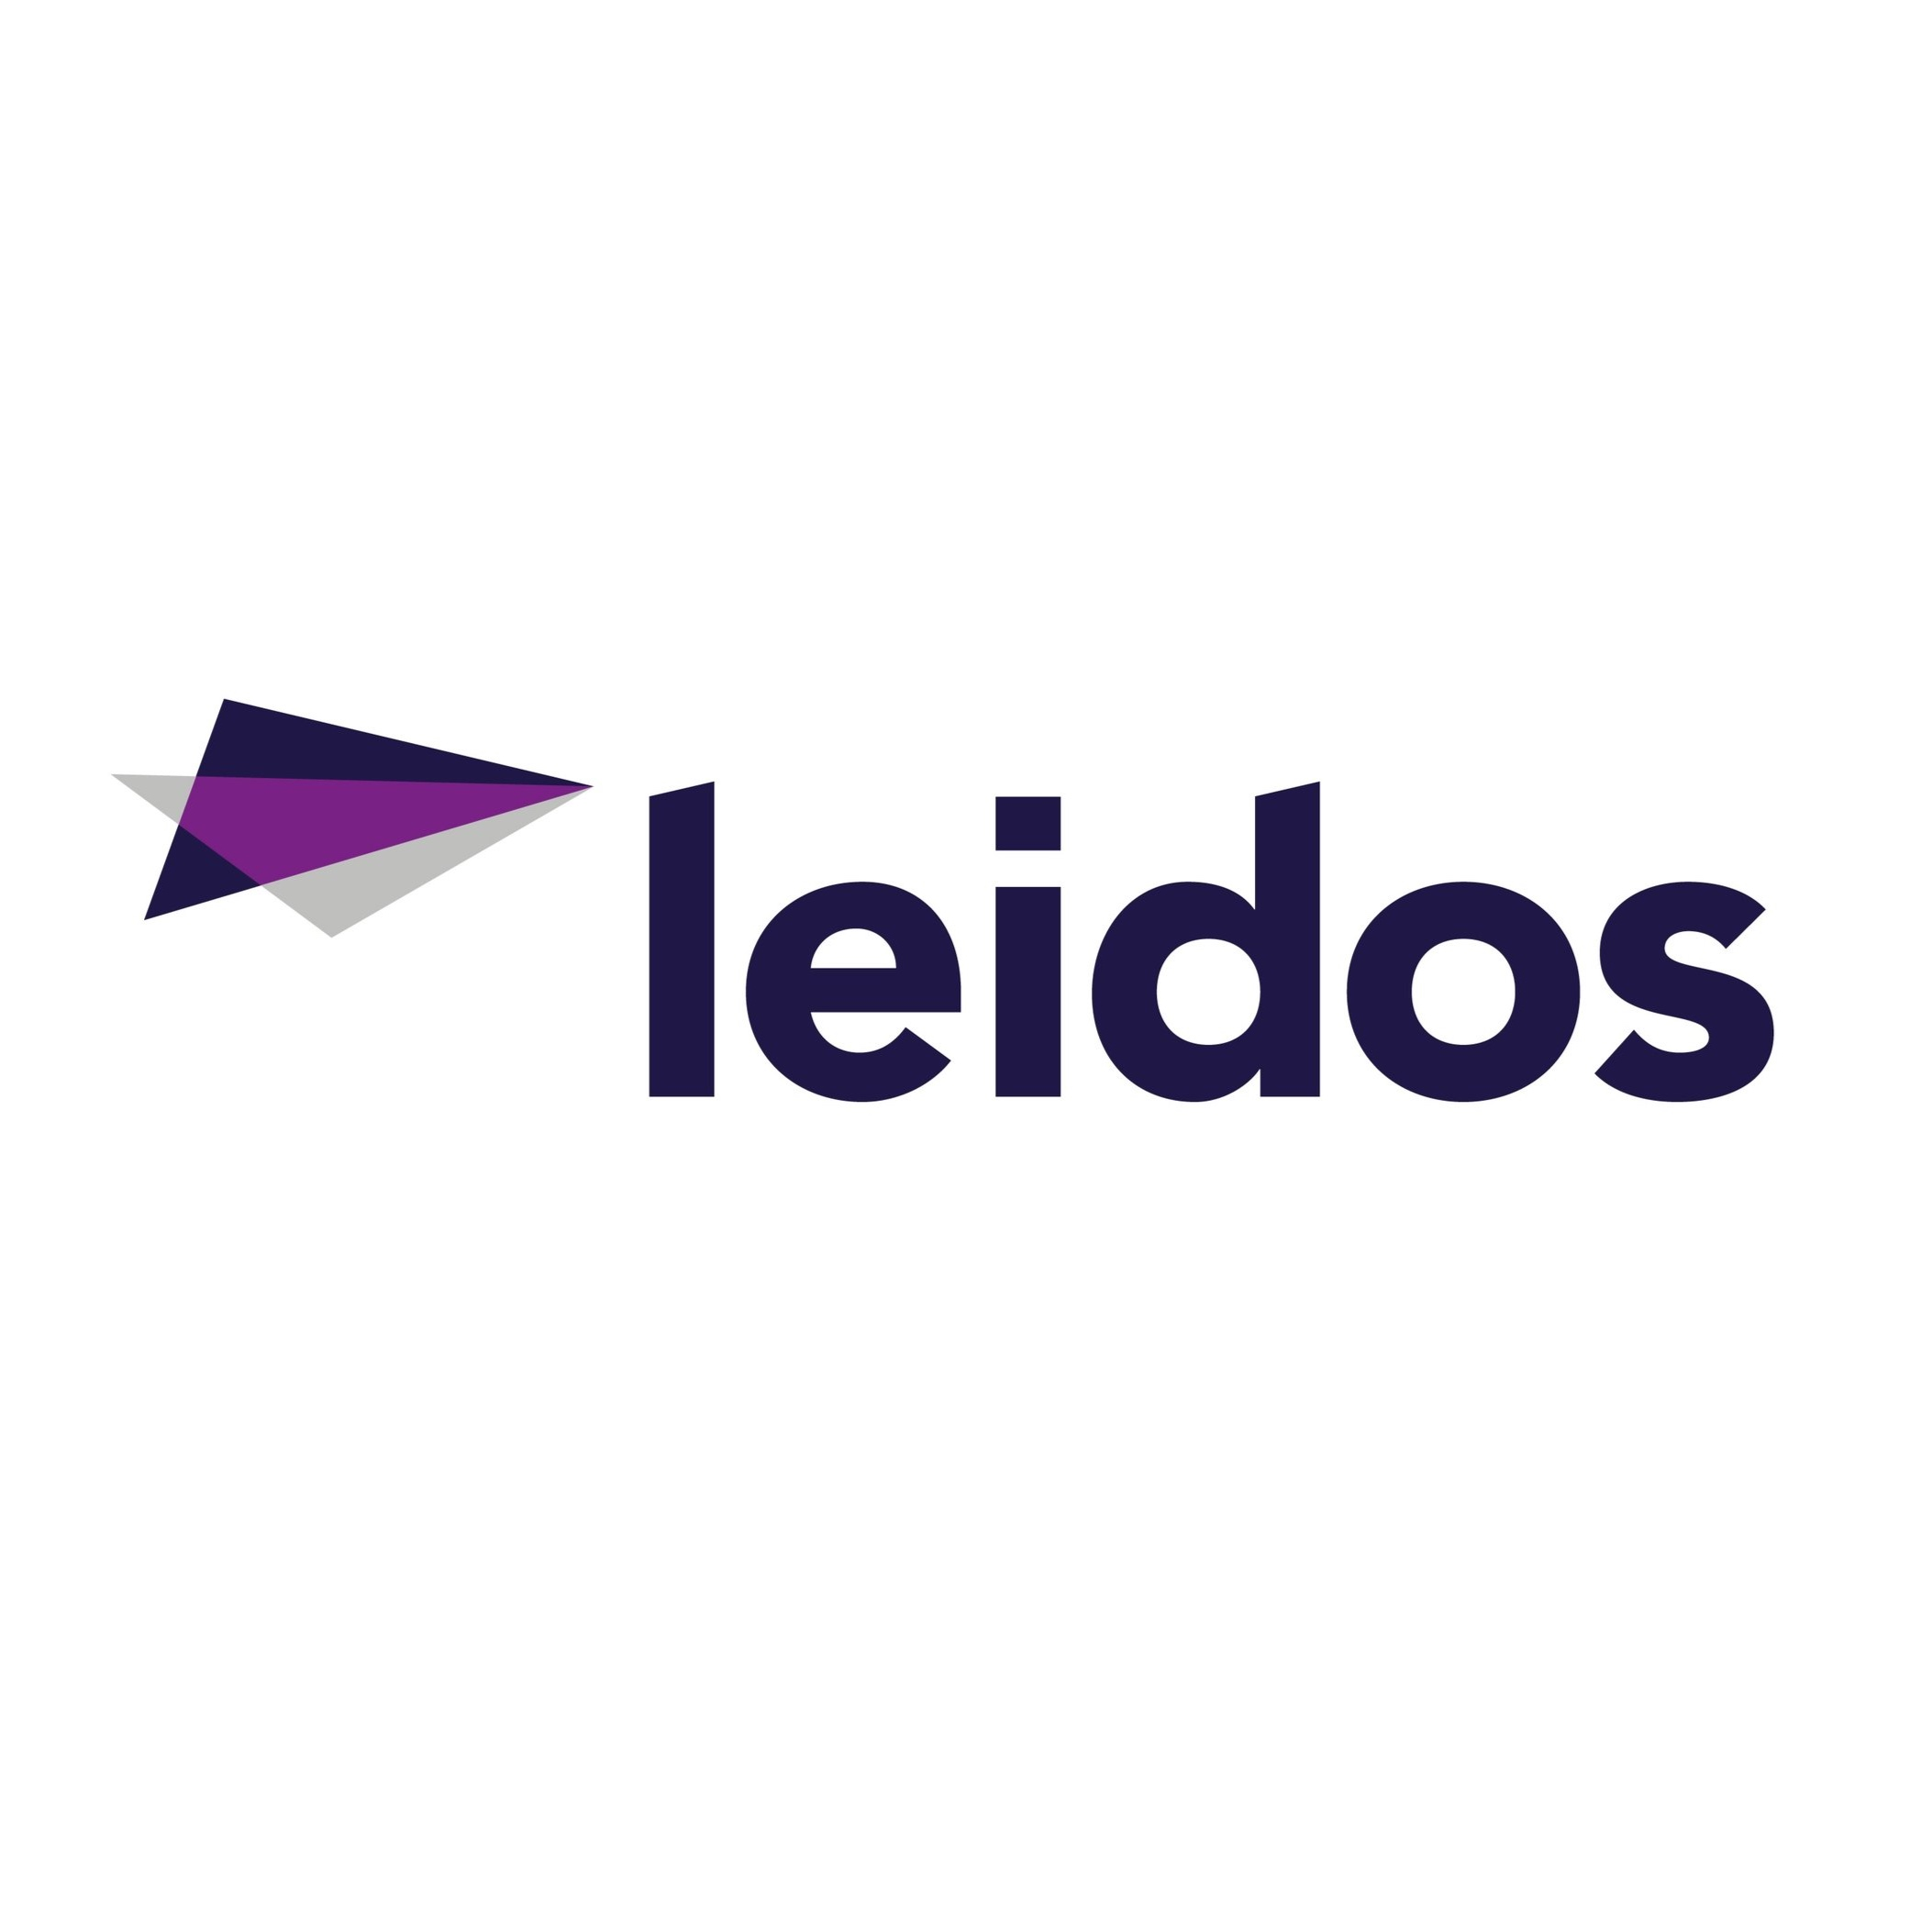 Leidos Mission - Leidos makes the world safer, healthier, and more efficient through information technology, engineering, and science.